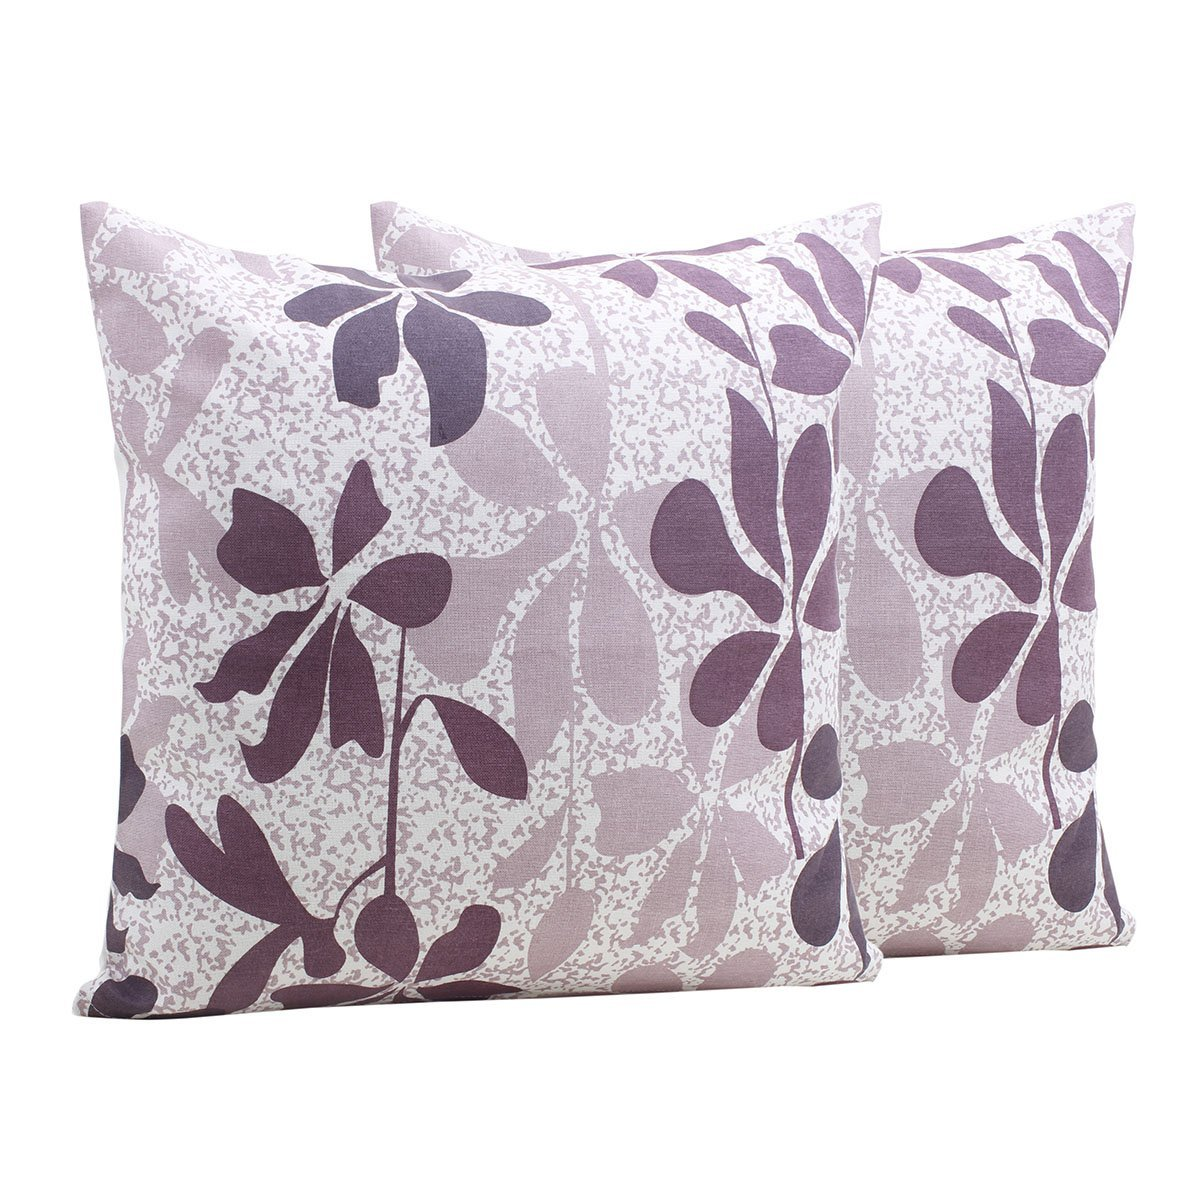 Decorative Throw Pillow Cushion Covers for Sofa 18 x 18 Set of 2 Cases 100% Cotton Floral Designed Home Bedding Accessories